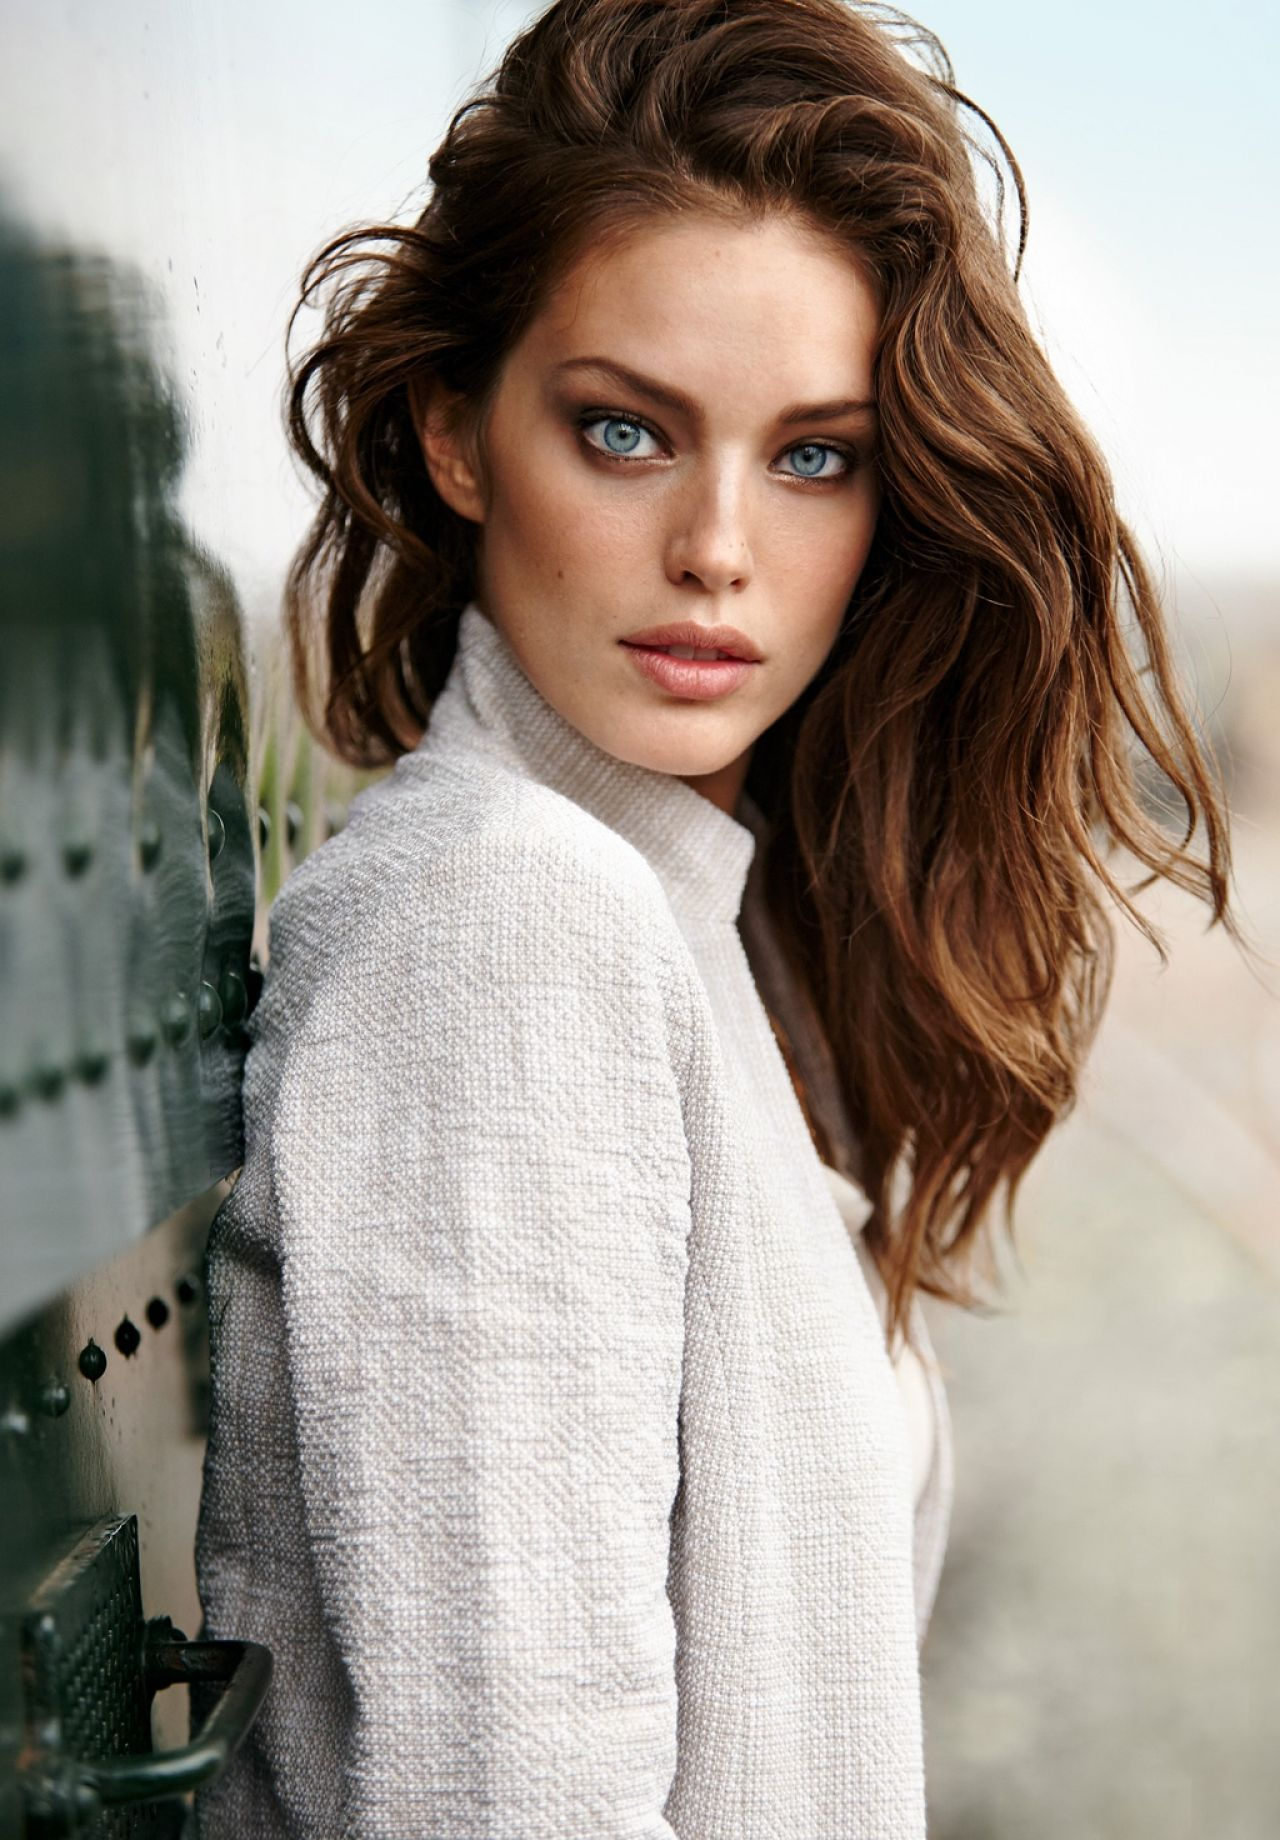 emily didonato - Google Search | women. | Pinterest | Emily ...